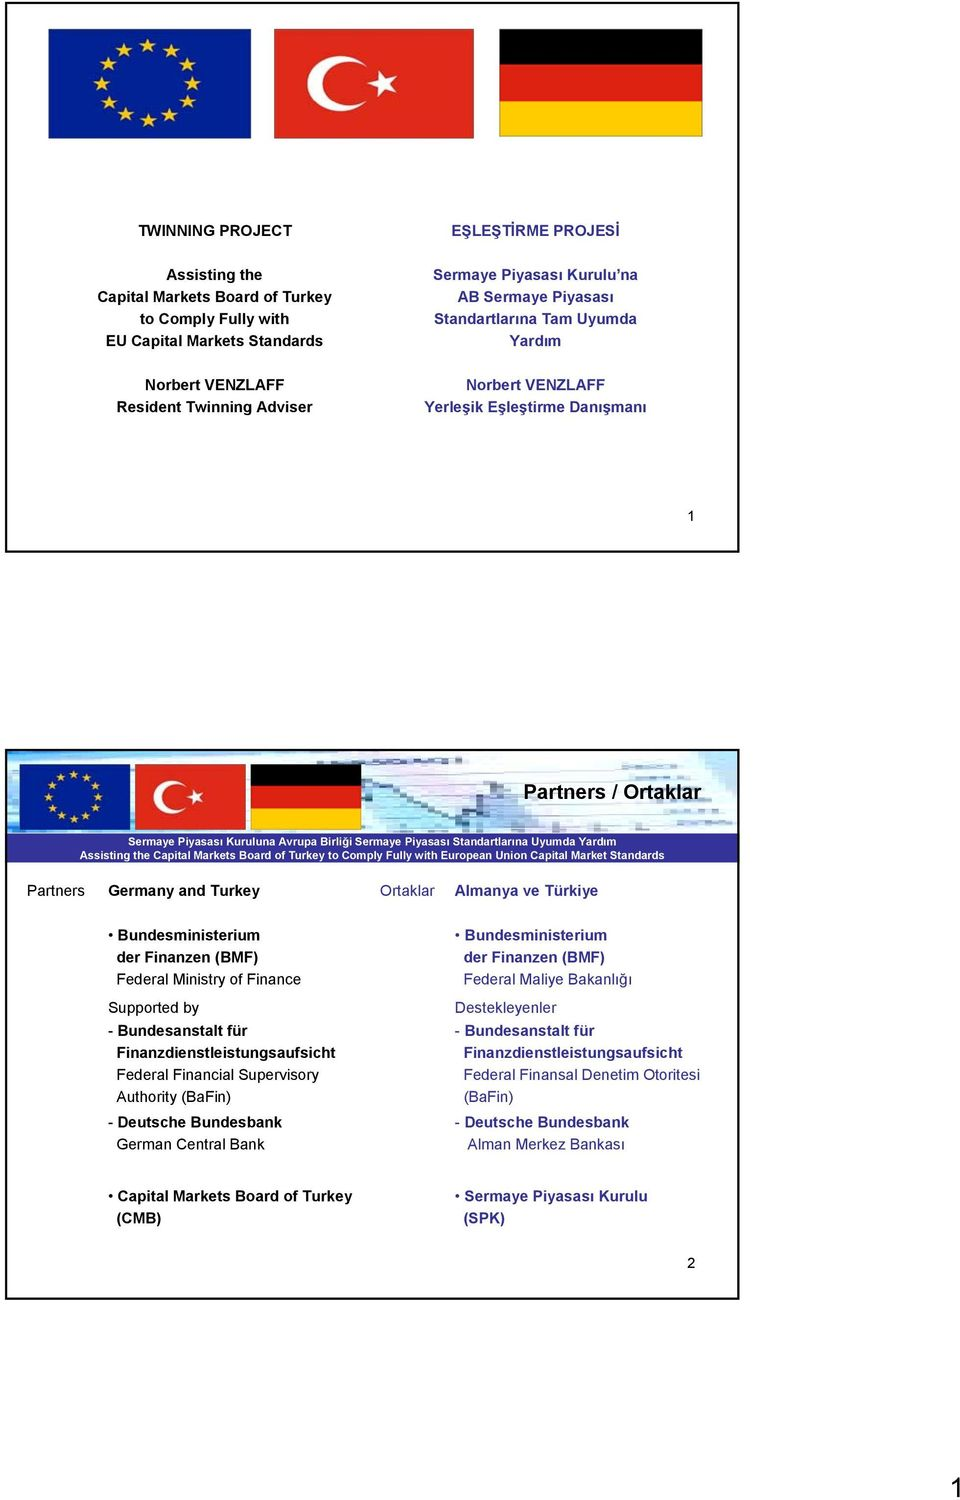 der Finanzen (BMF) Federal Ministry of Finance Bundesministerium der Finanzen (BMF) Federal Maliye Bakanlığı Supported by - Bundesanstalt für Finanzdienstleistungsaufsicht Federal Financial